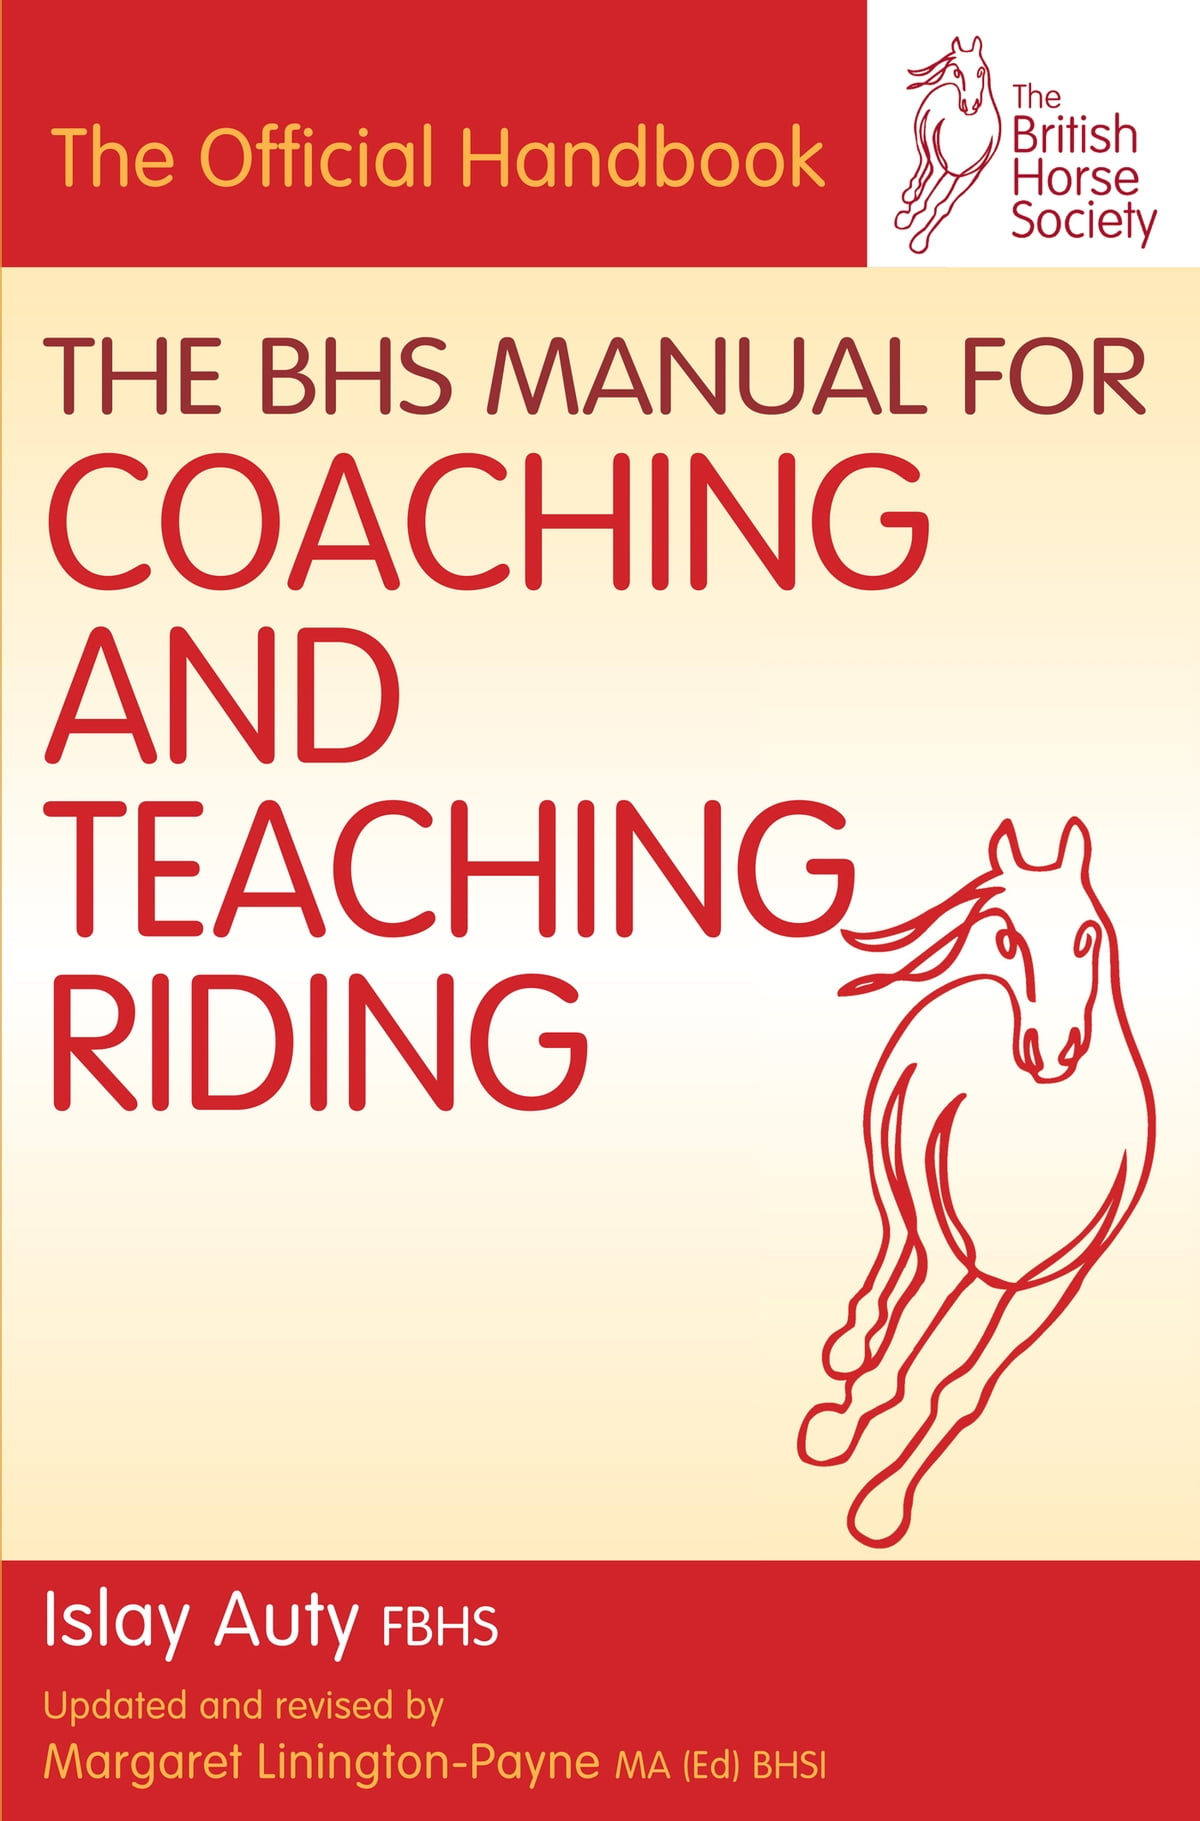 Bhs manual for coaching and teaching riding ebook by islay auty bhs manual for coaching and teaching riding ebook by islay auty 9781905693566 rakuten kobo fandeluxe Choice Image